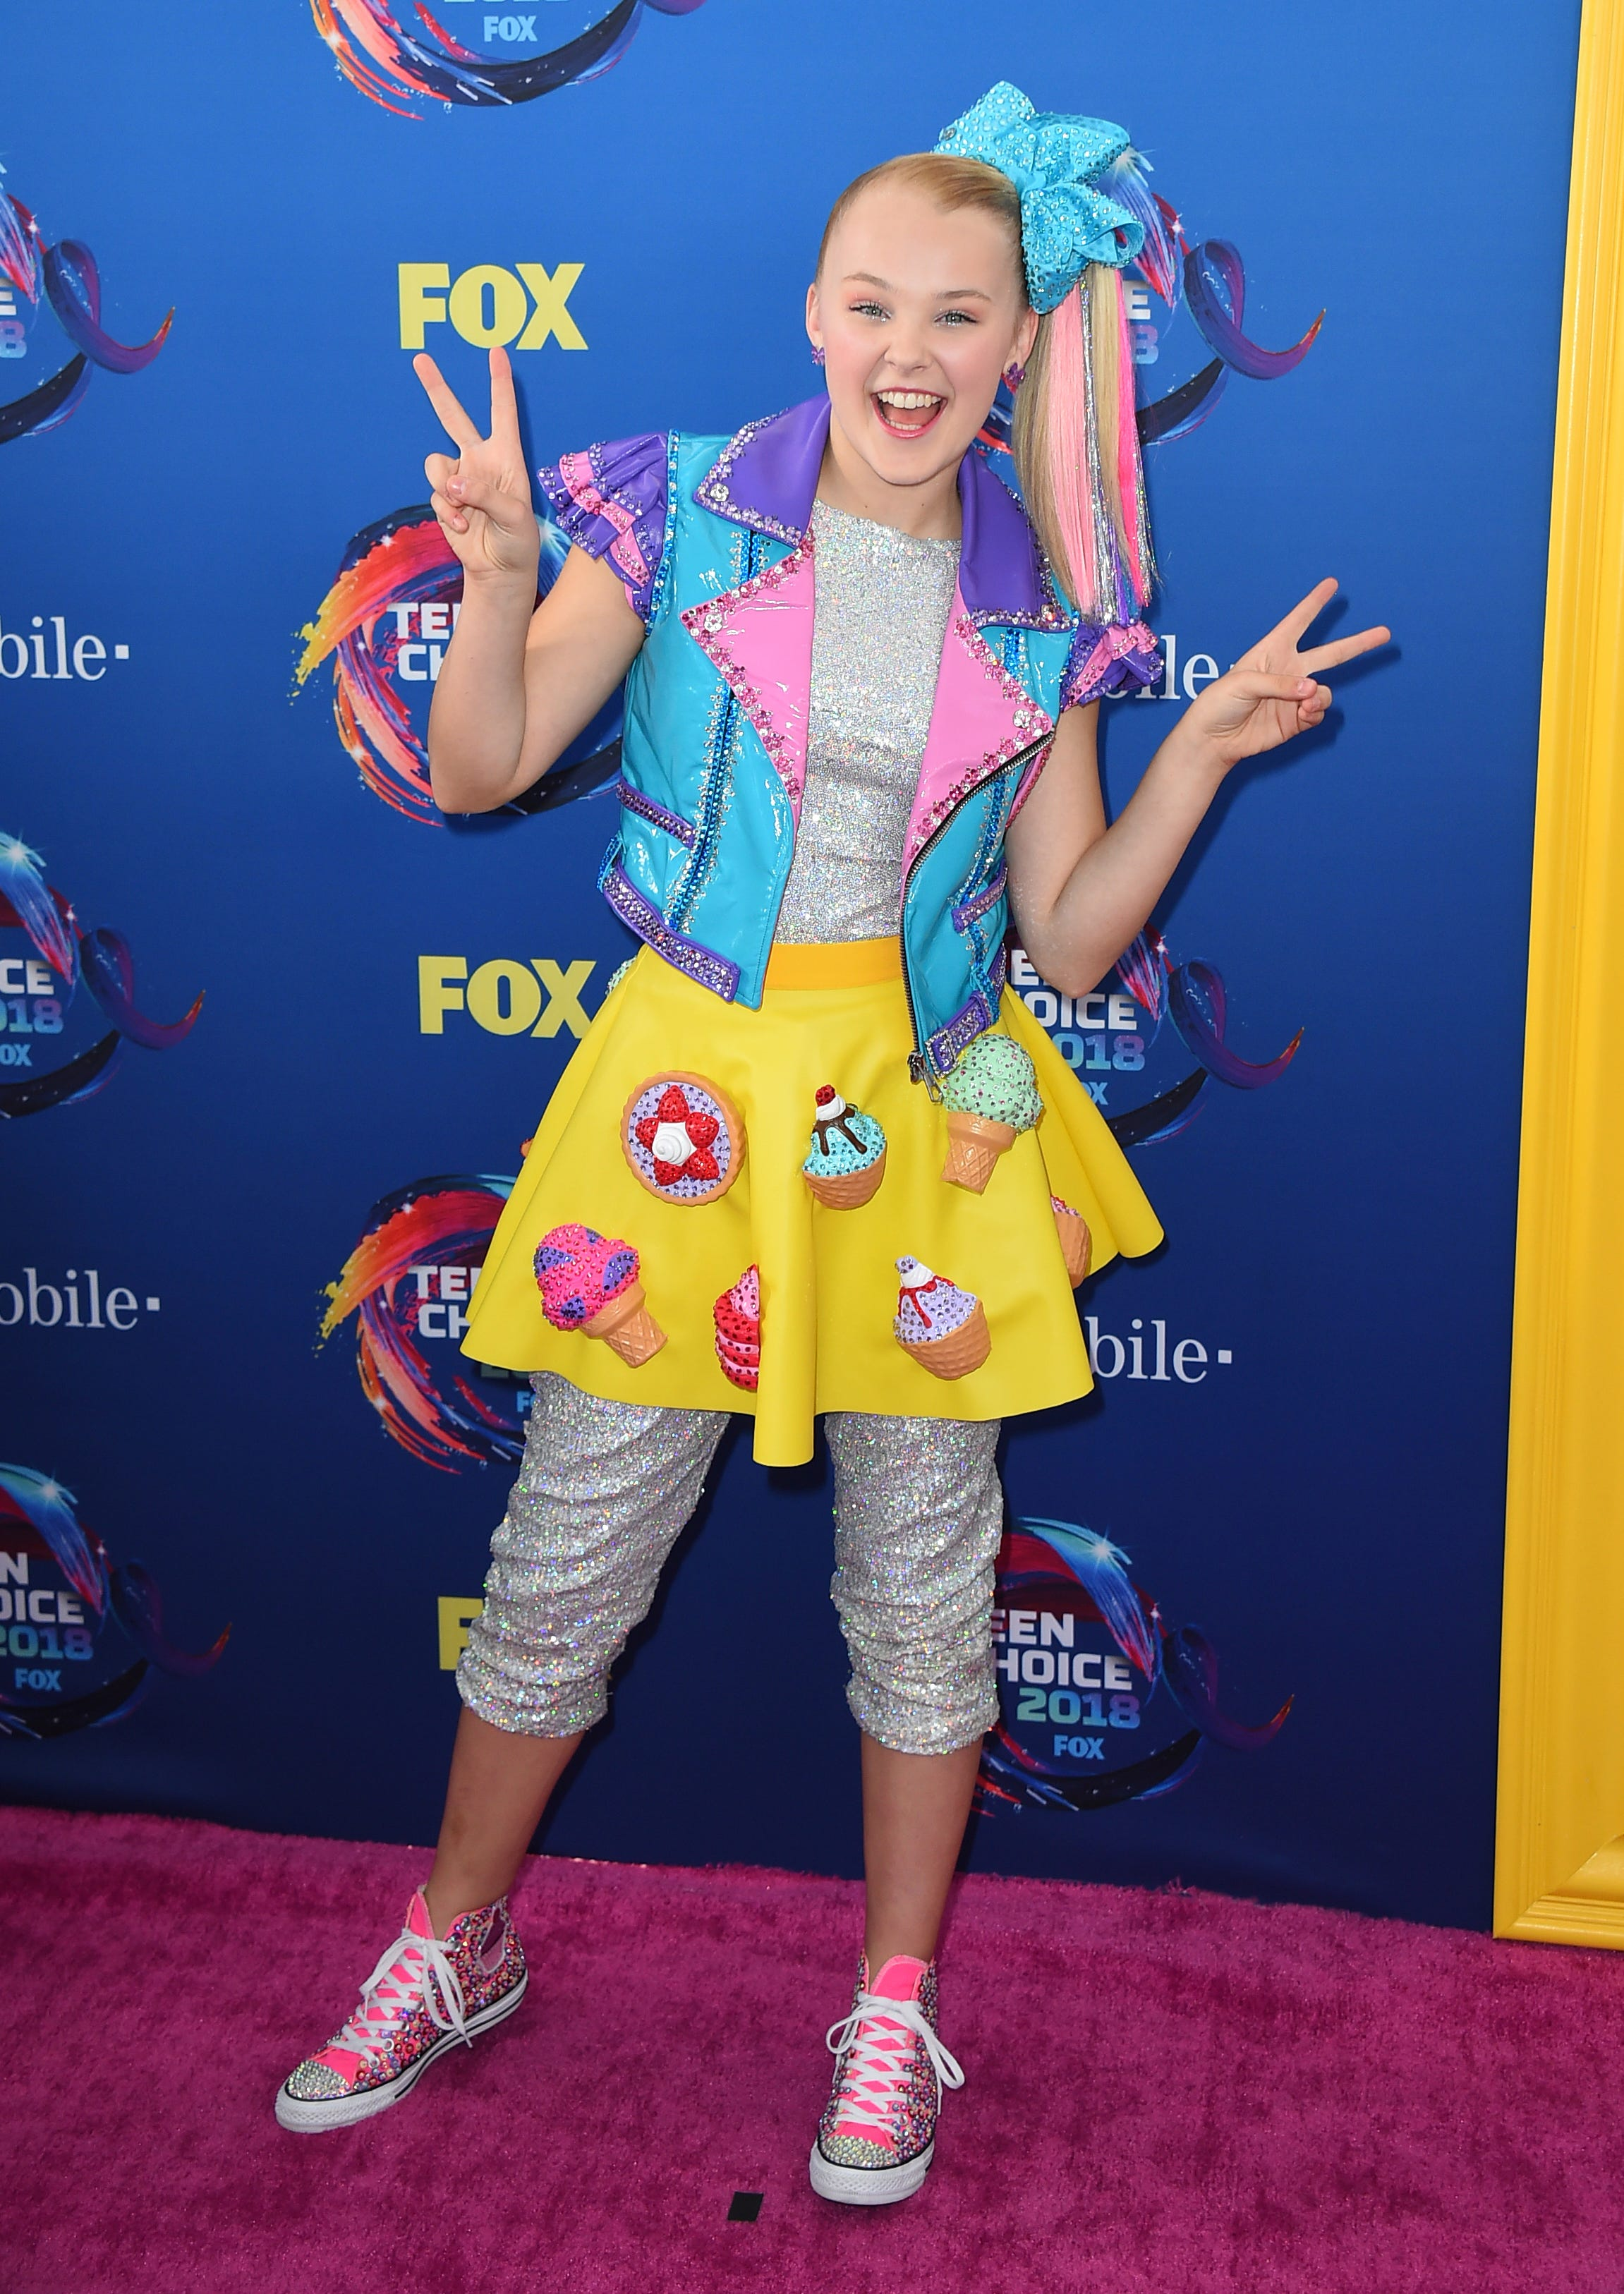 Jojo Siwa What To Know About The Youtube Star Dance Moms Alum